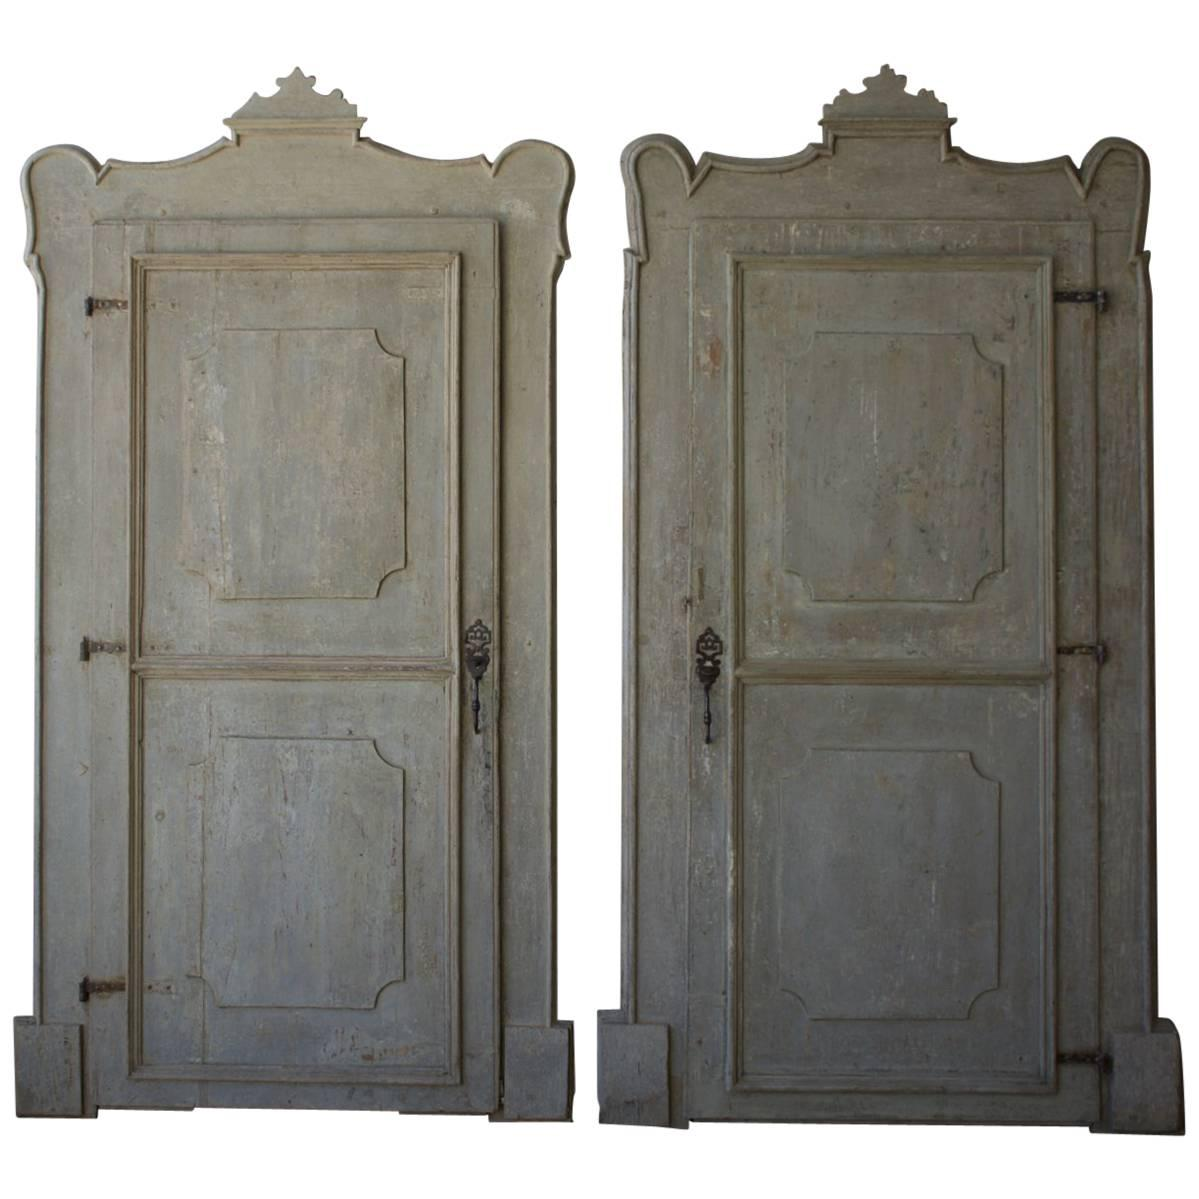 Ordinaire 19th Century Italian Doors With Carved Frame For Sale